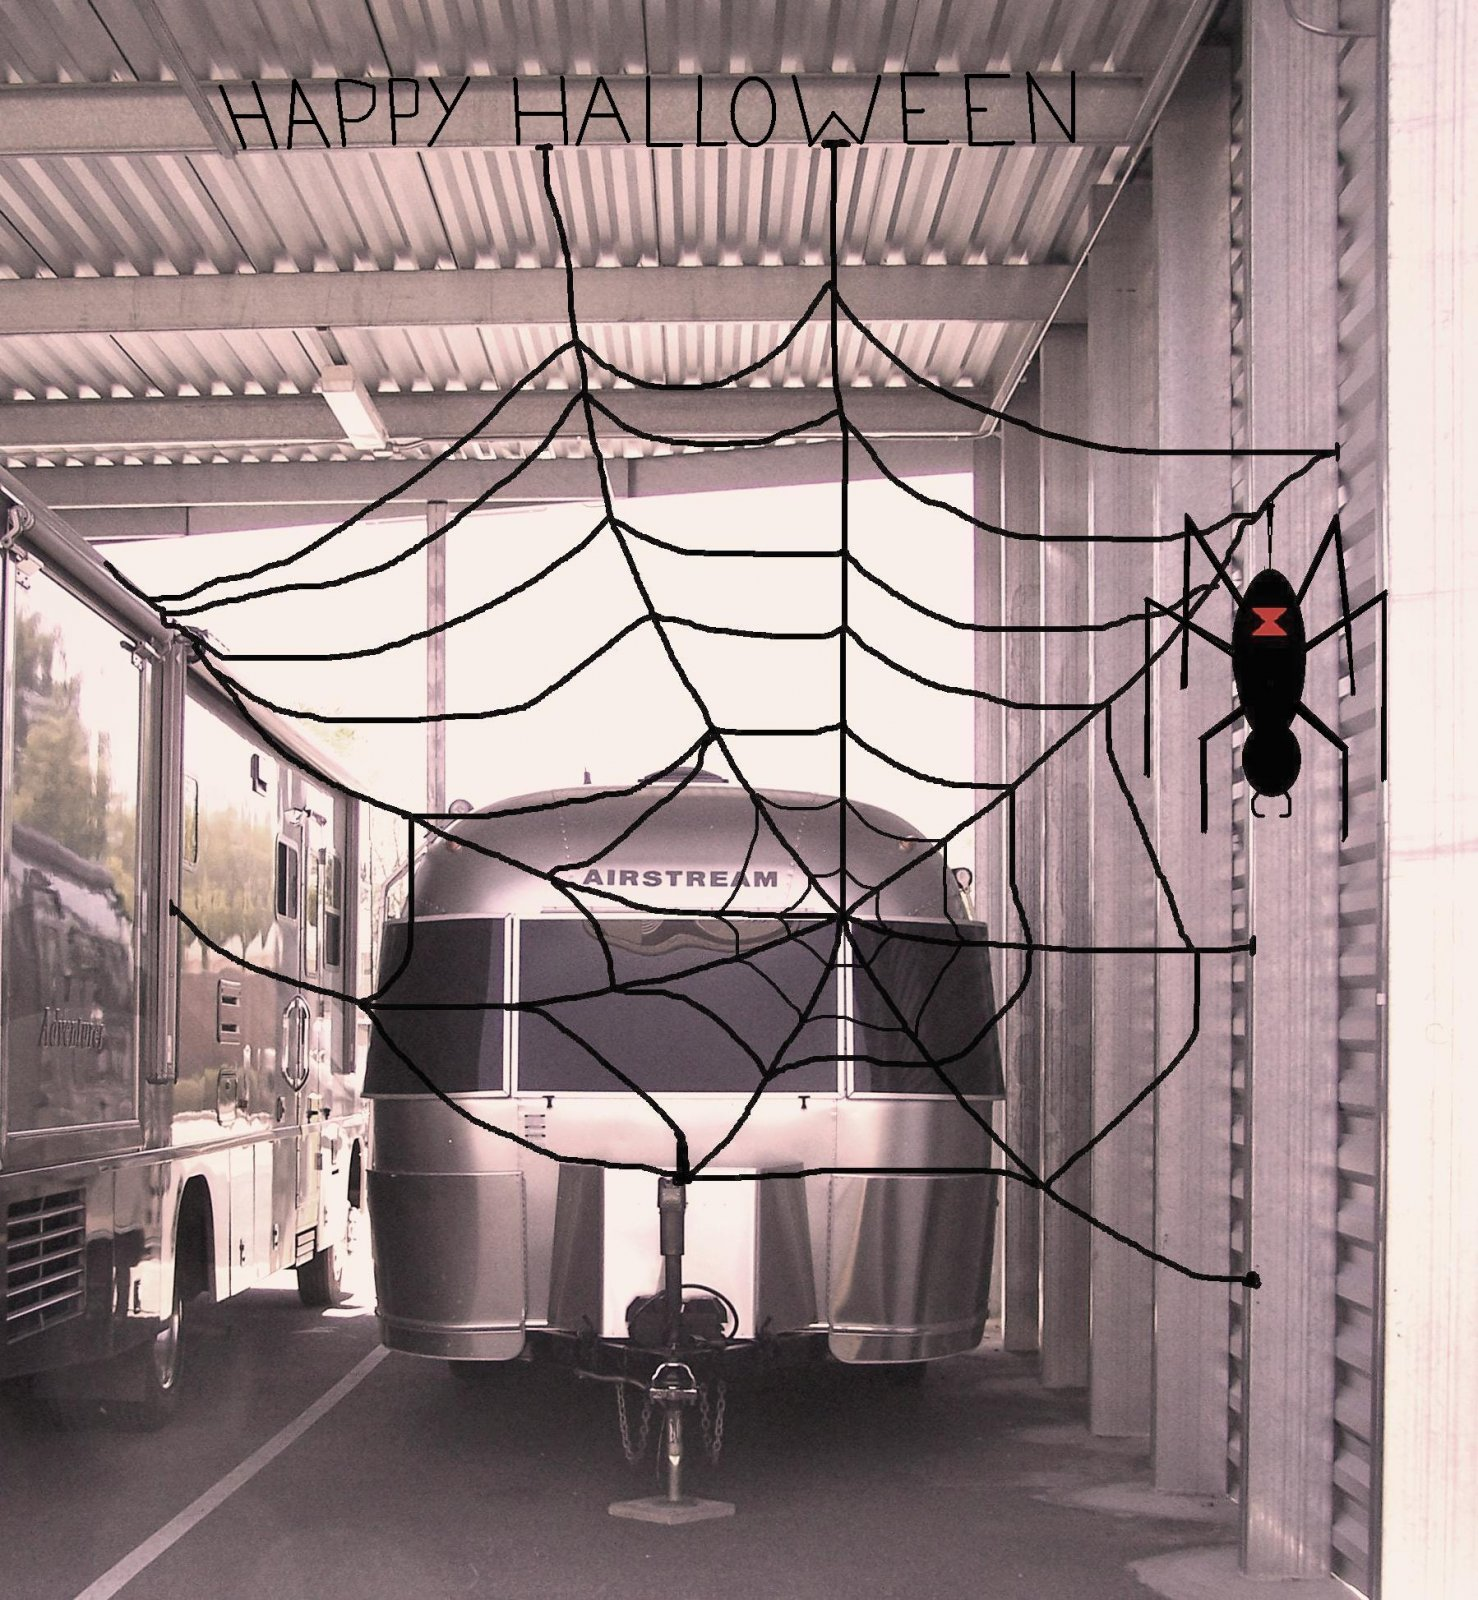 Click image for larger version  Name:spidey halloween.jpg Views:79 Size:438.4 KB ID:113539